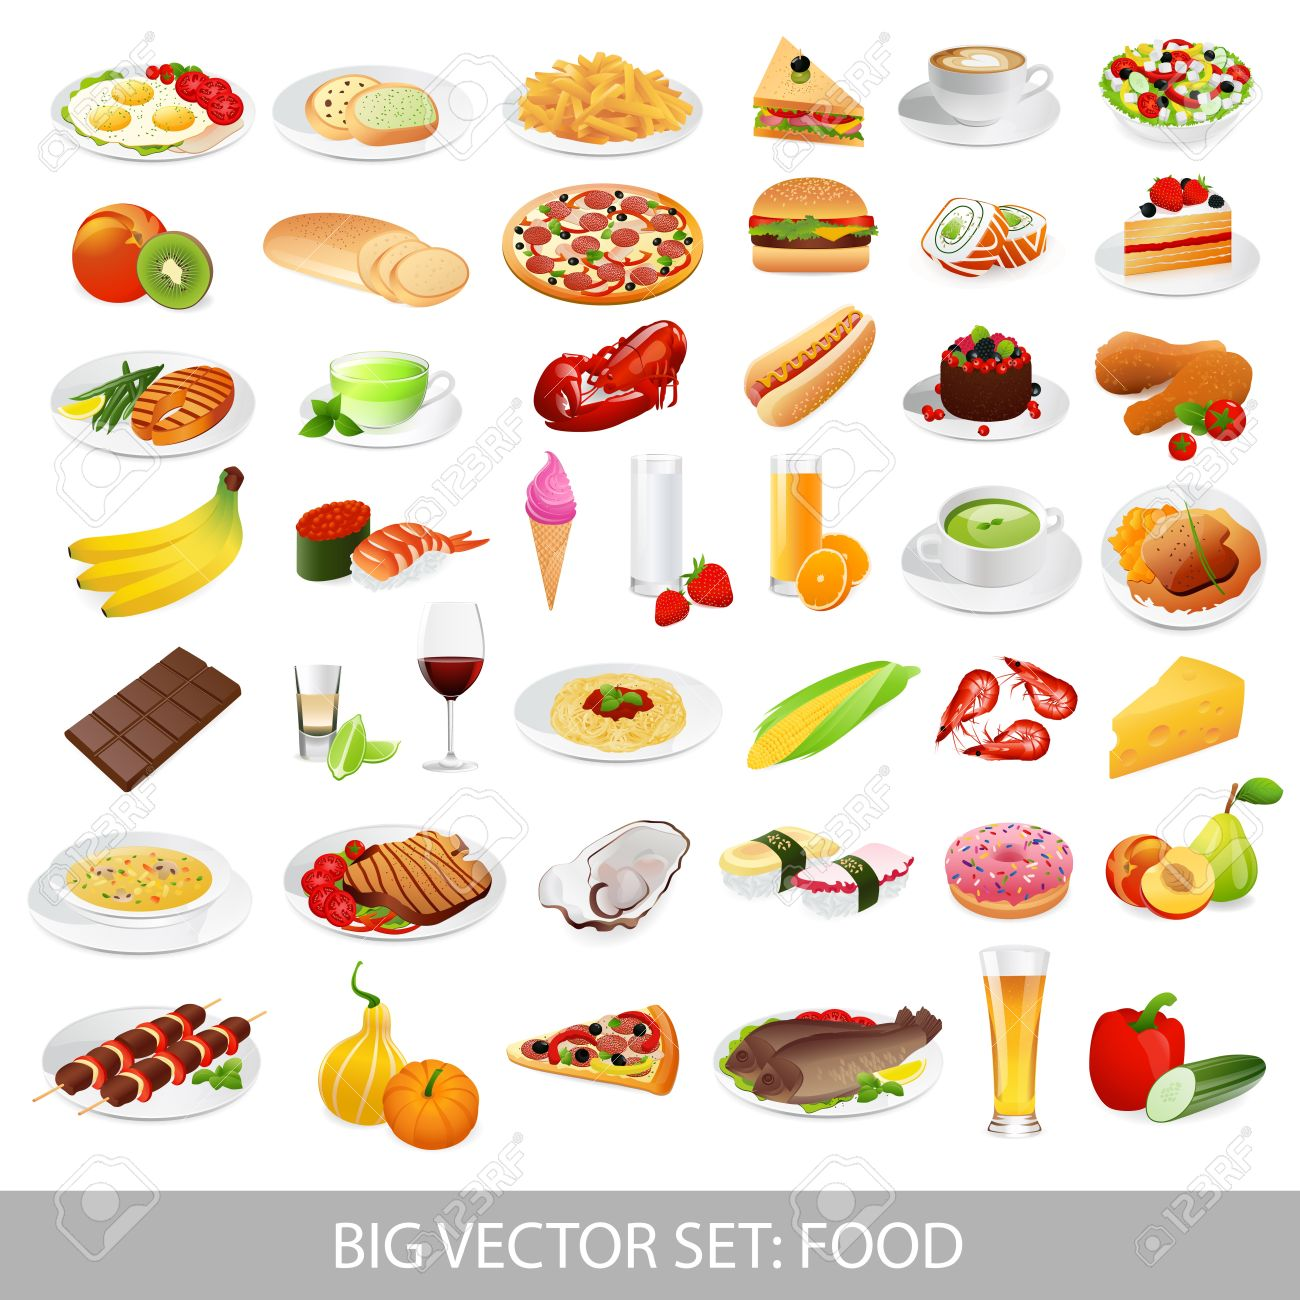 Big vector set  food  various delicious dishes  - detailed illustrations Stock Vector - 12489658